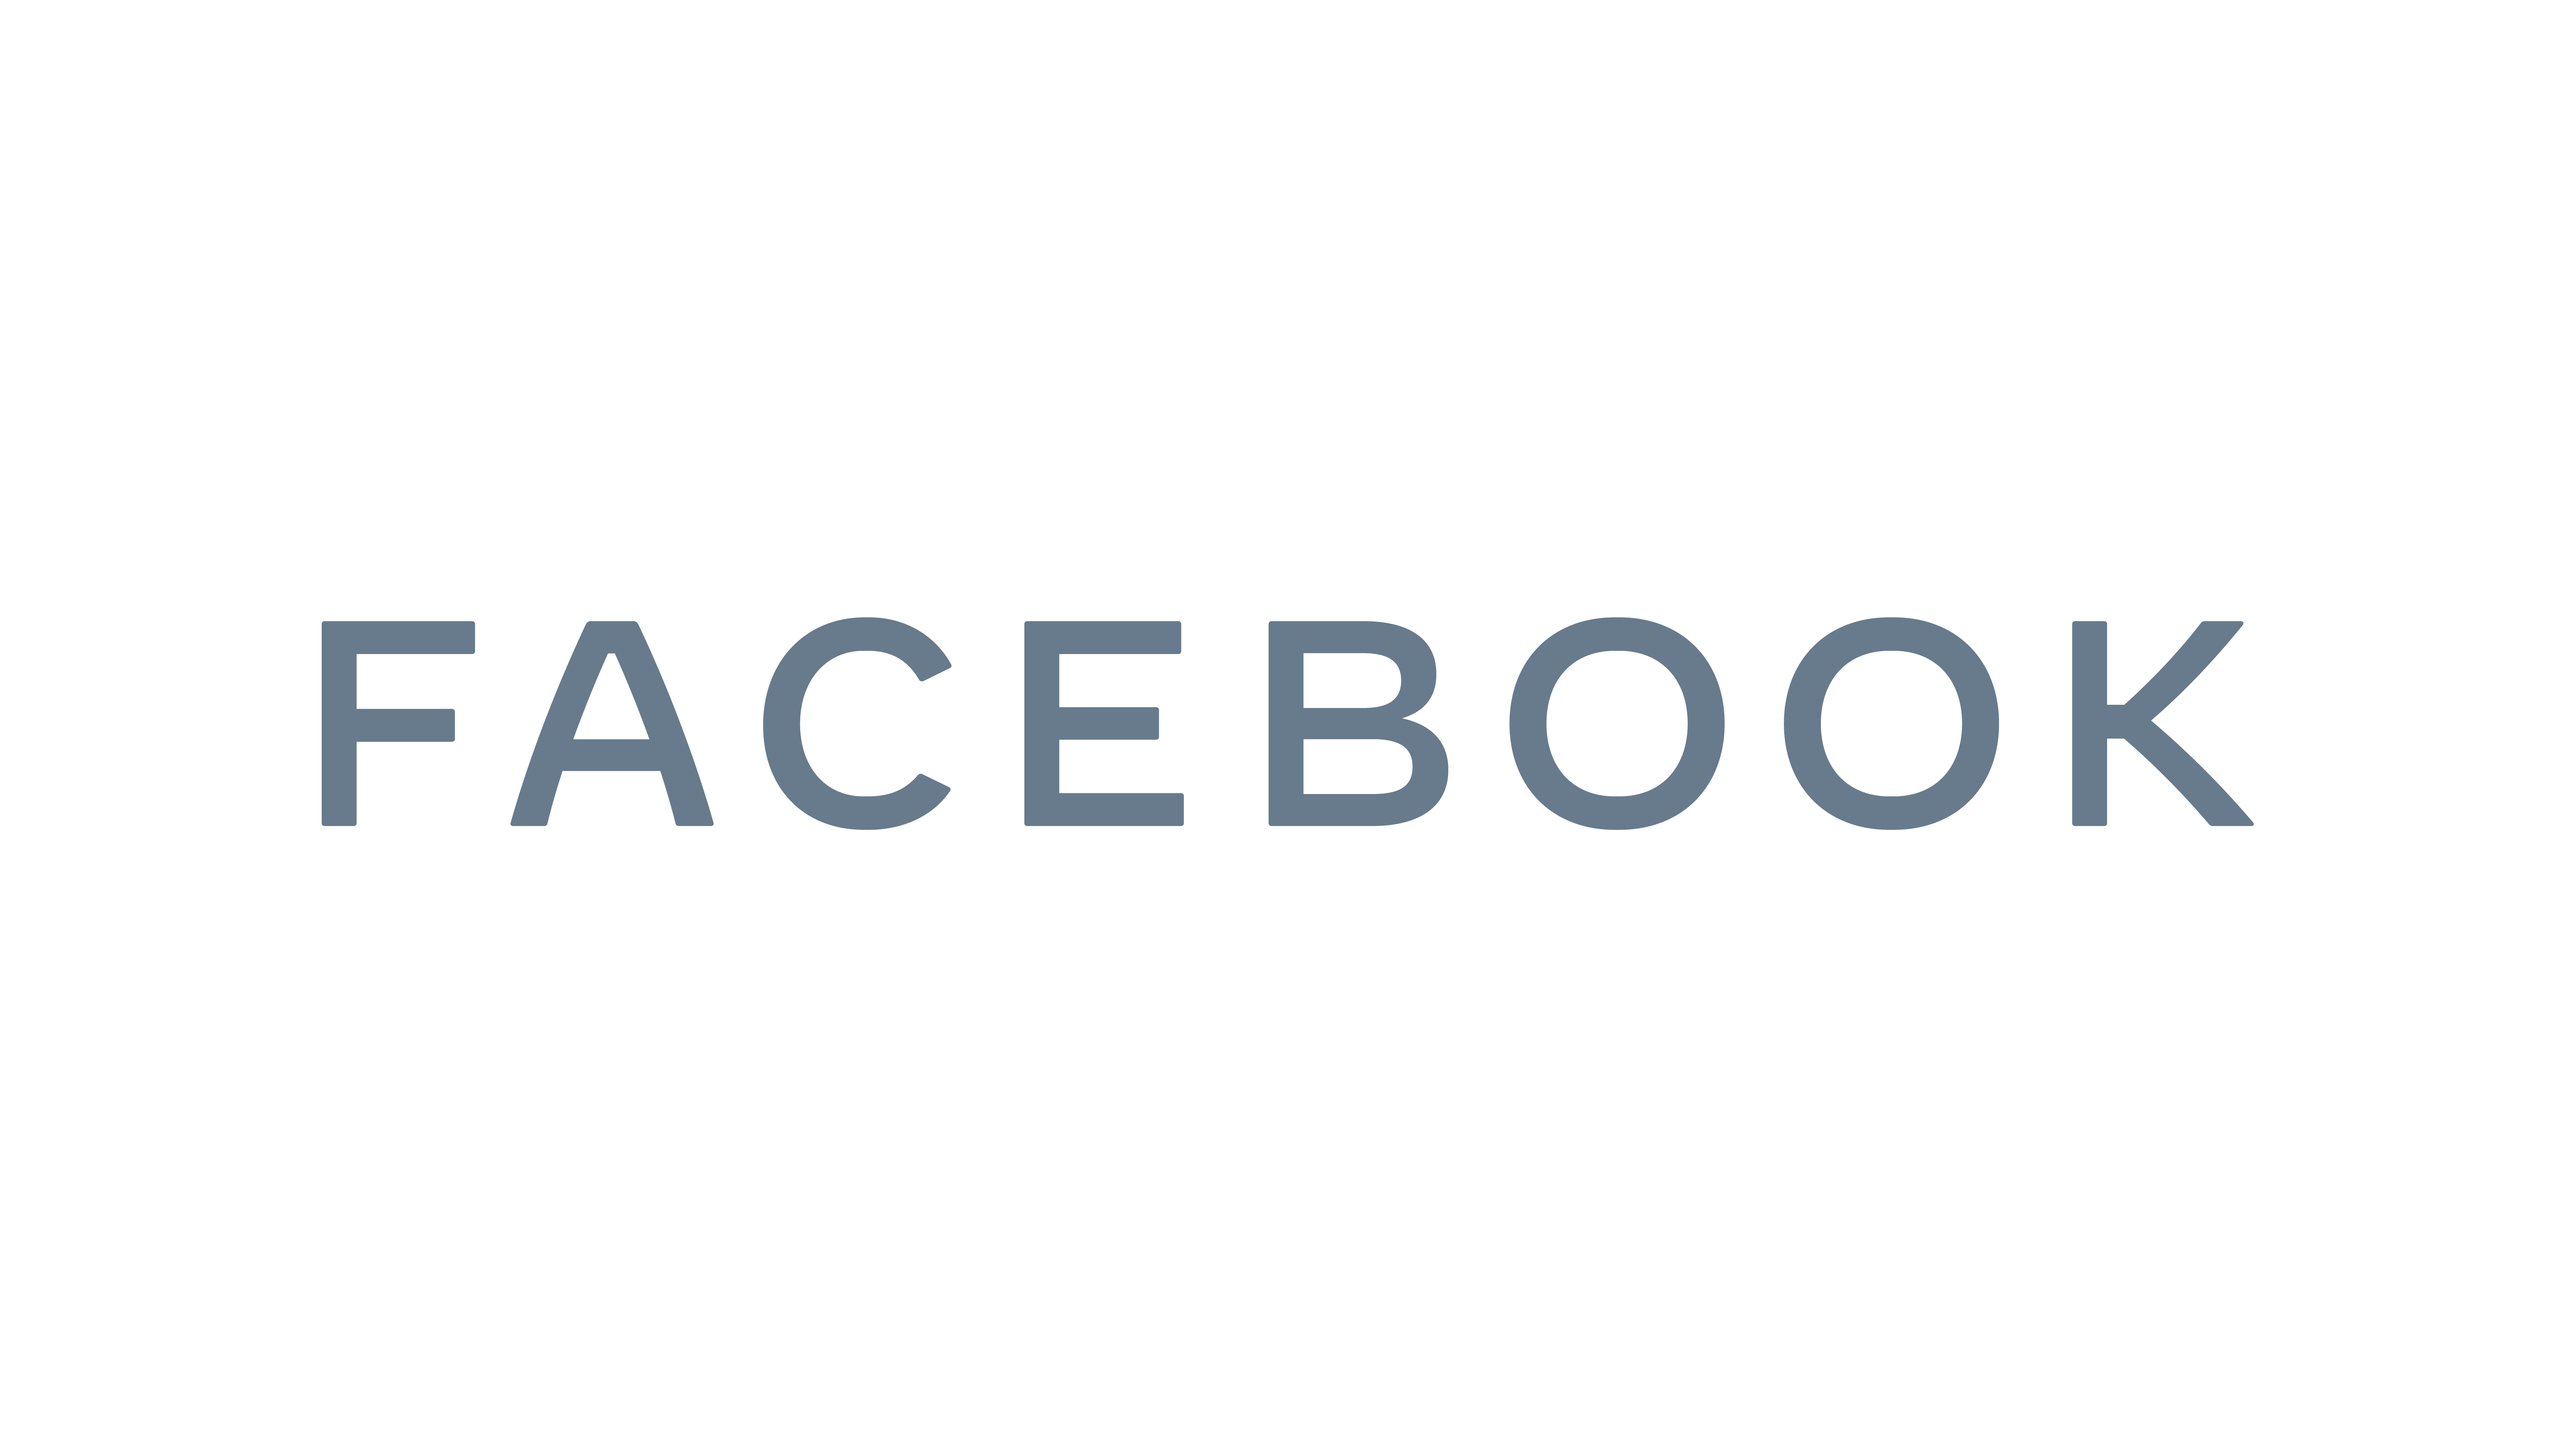 Facebook-Wordmark-Gray